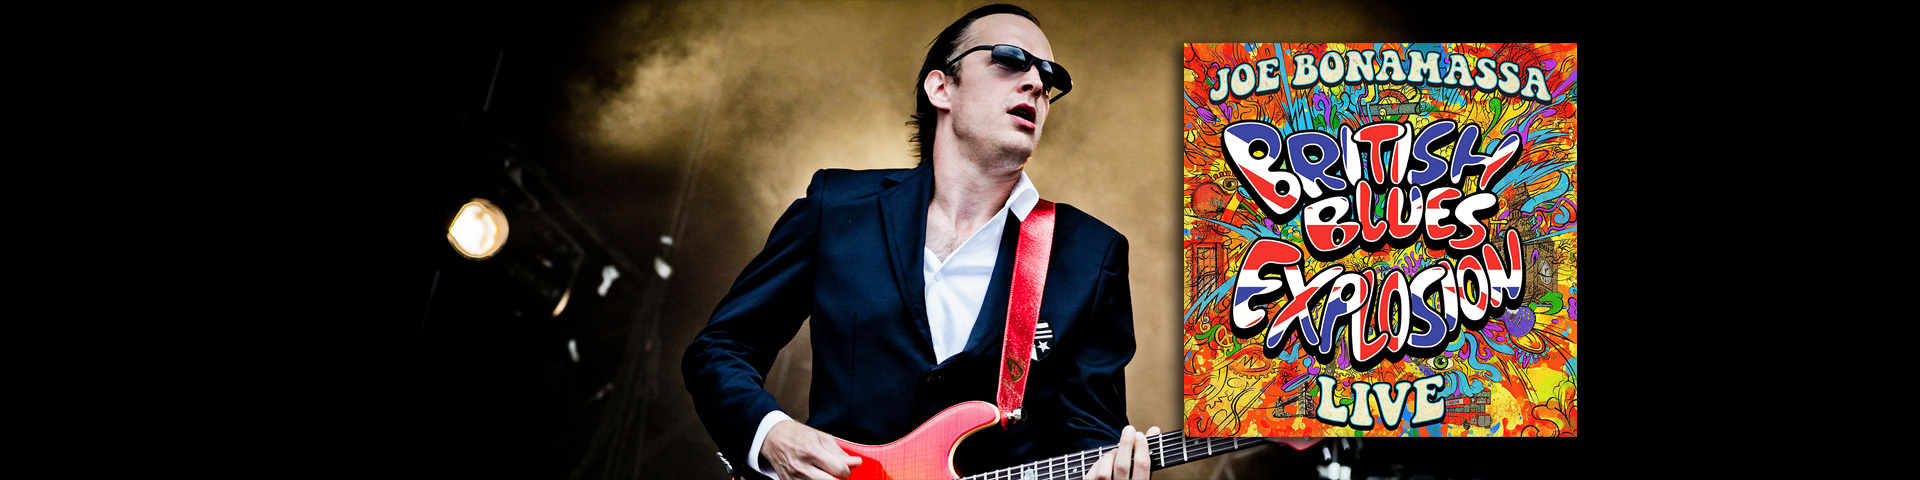 Joe Bonamassa - British Blues Explosion